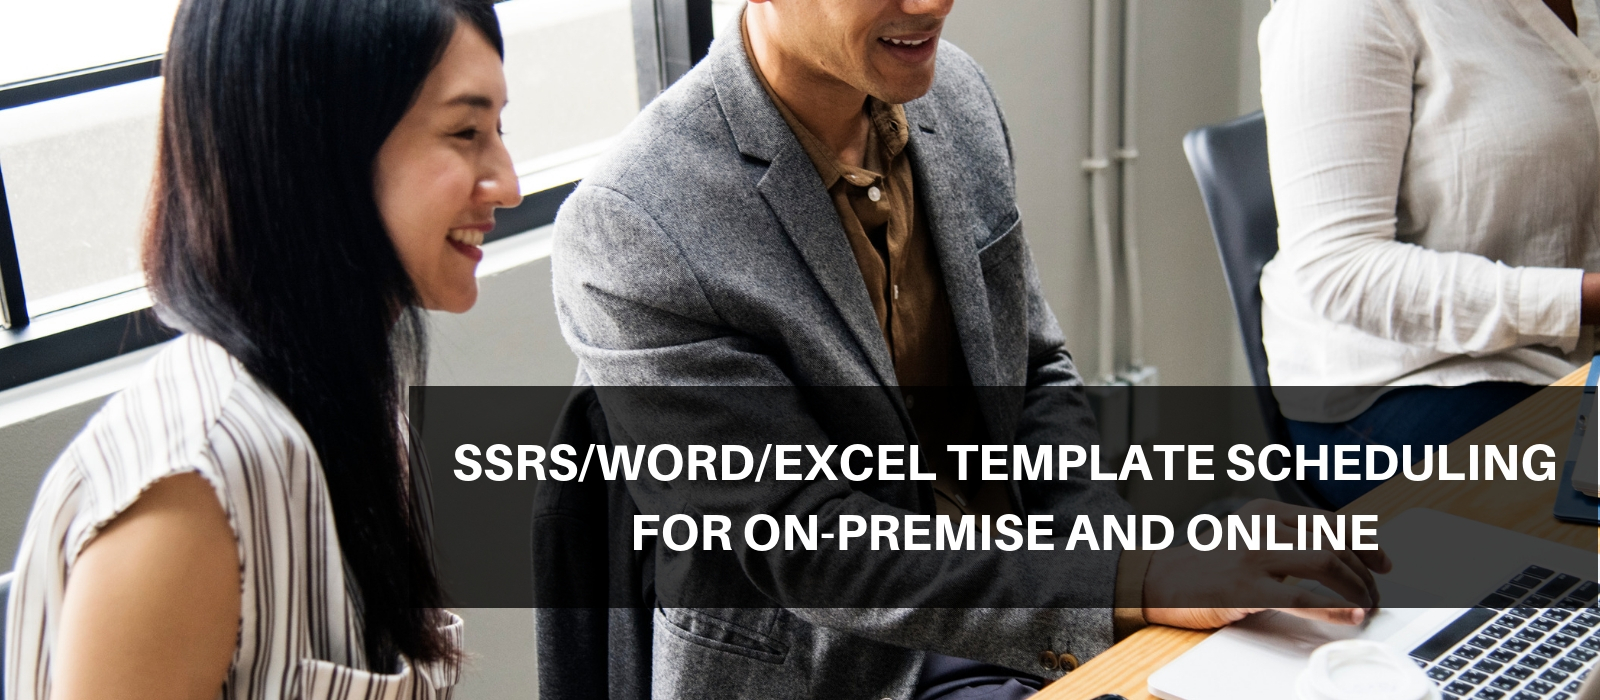 Export Dynamics 365 CRM Report to PDF, Word, Excel, CSV and TIFF